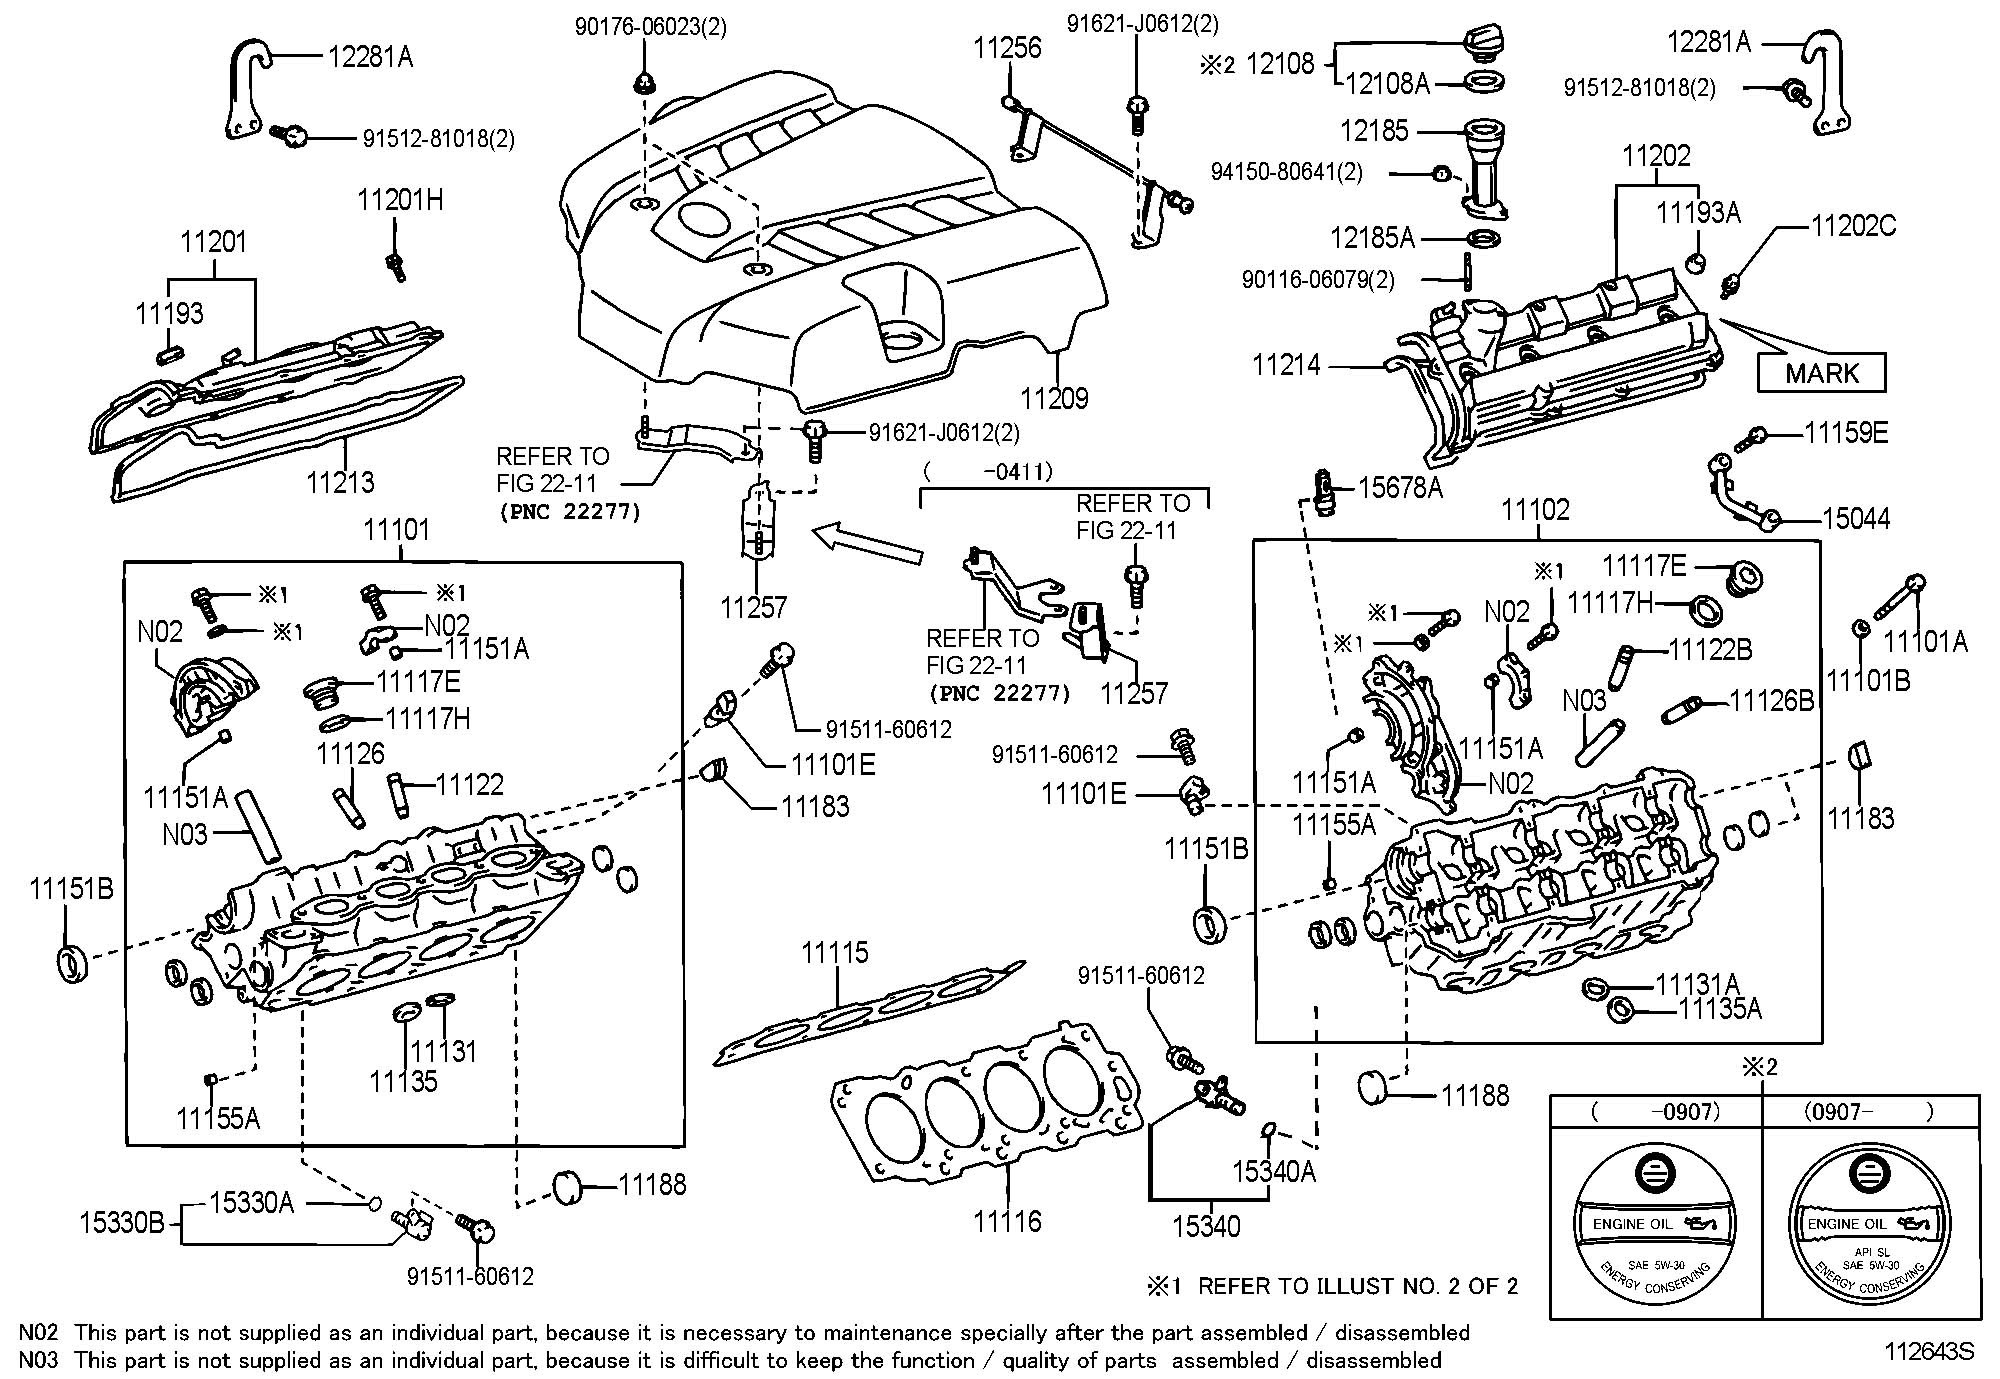 Lexus Gs Engine Diagram Trusted Wiring For 1999 Gs300 Es300 My Rh Detoxicrecenze Com 2001